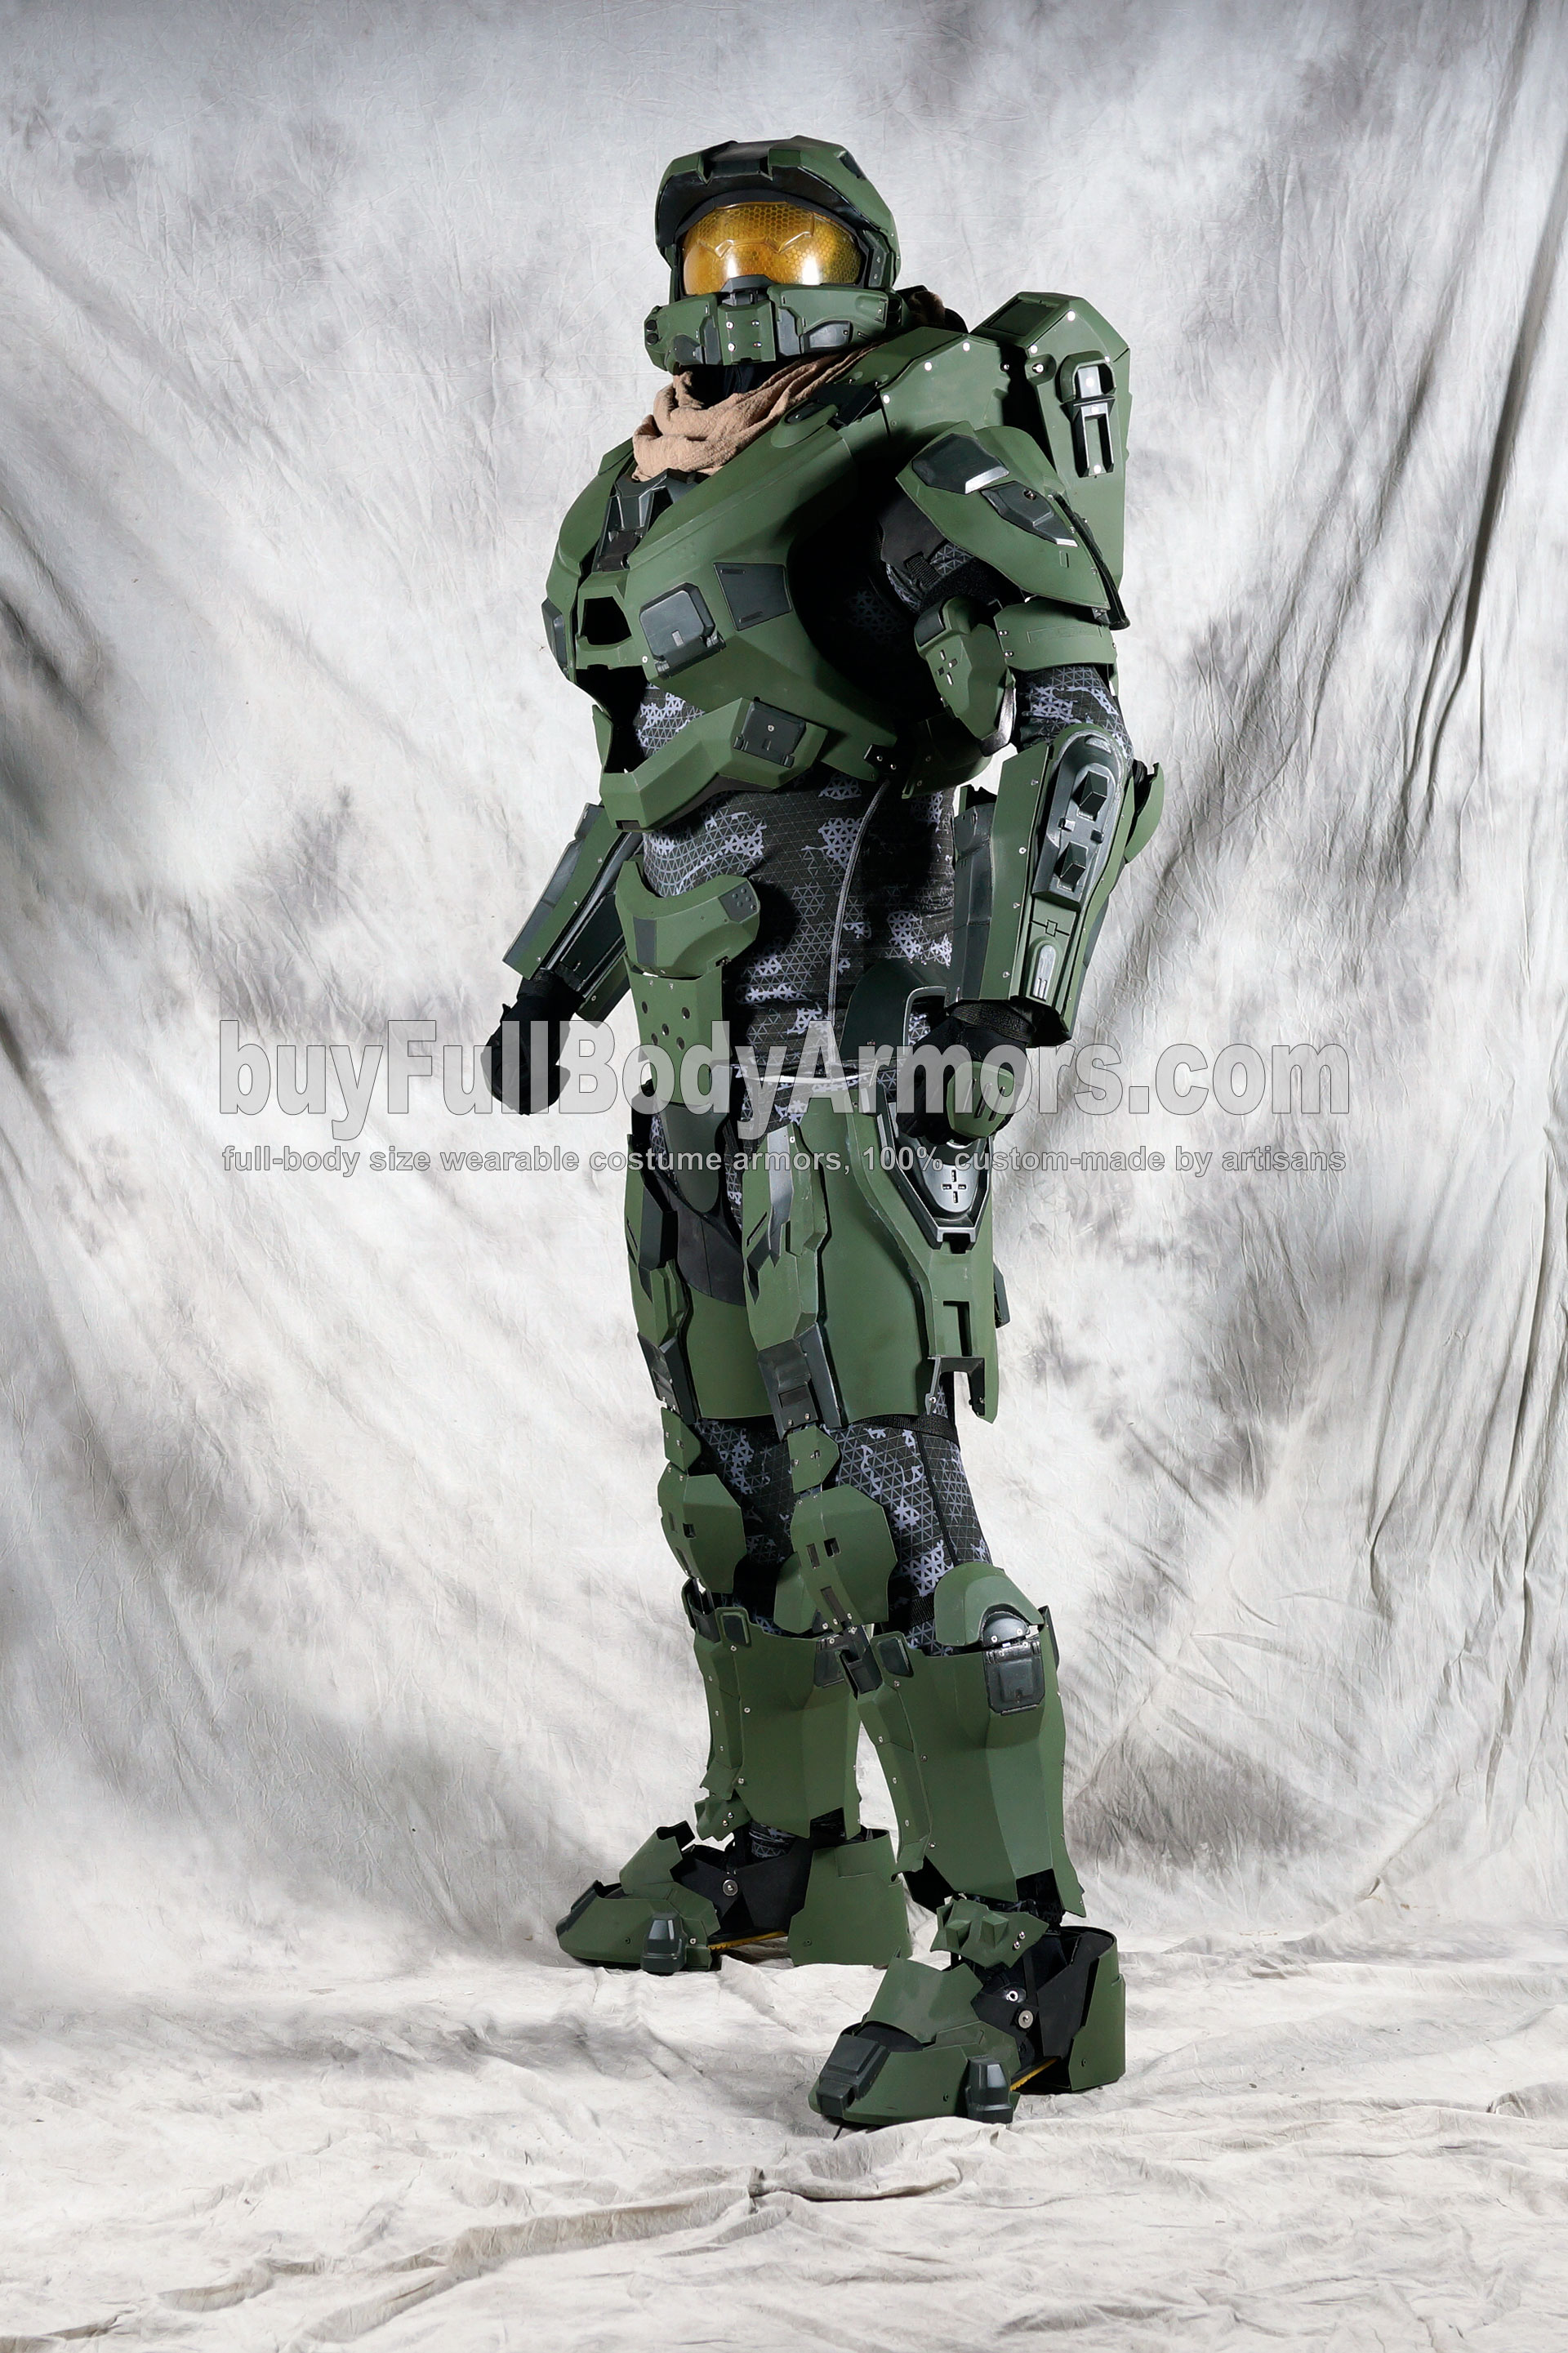 Halo 5 Master Chief Armor Suit Costume 1 & Buy Iron Man suit Halo Master Chief armor Batman costume Star ...